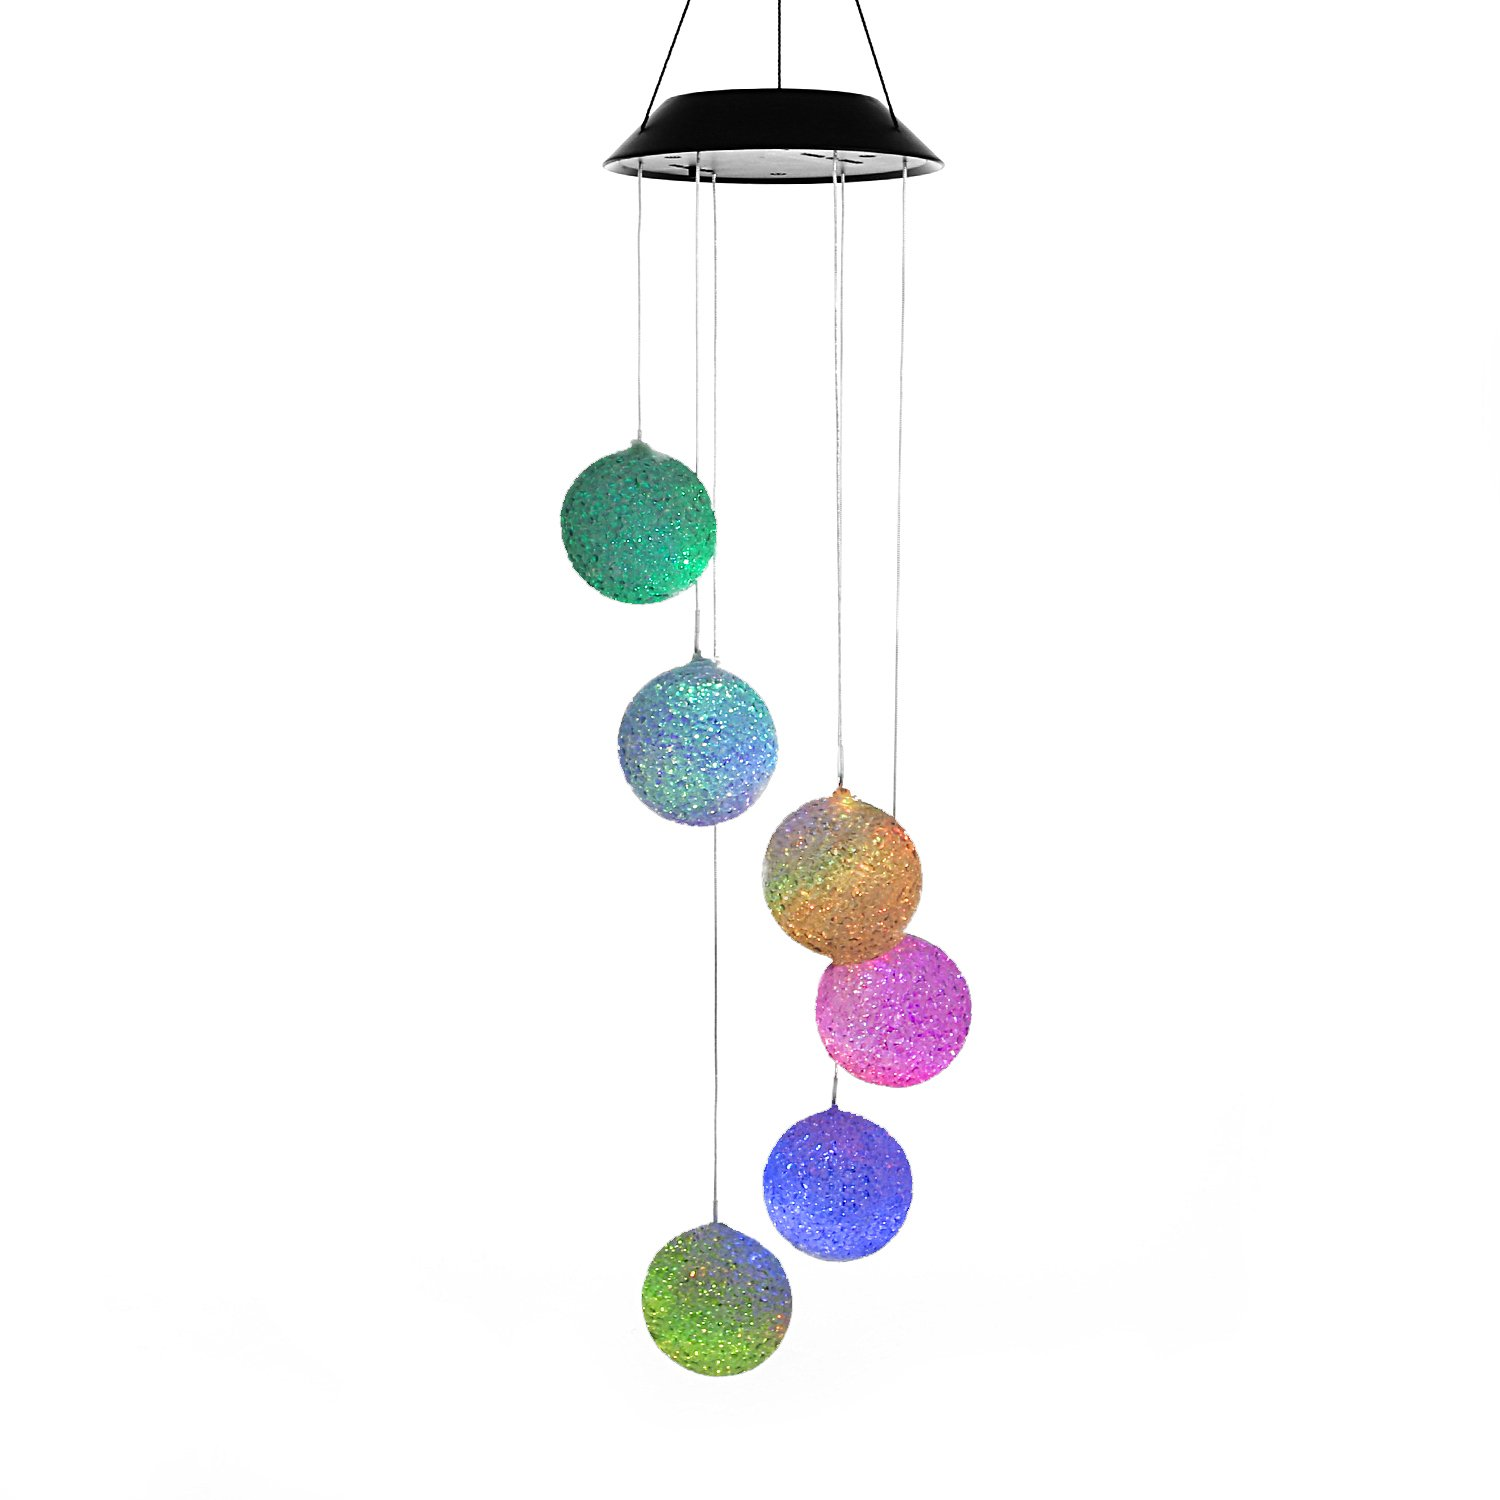 Solar-powered Changing Color Mobile Light /w Swivel Clip Hook Hanger, ANZOME Spiral Spinner Windchime Outdoor Windbell Wind Spinner Chime LED Lamp